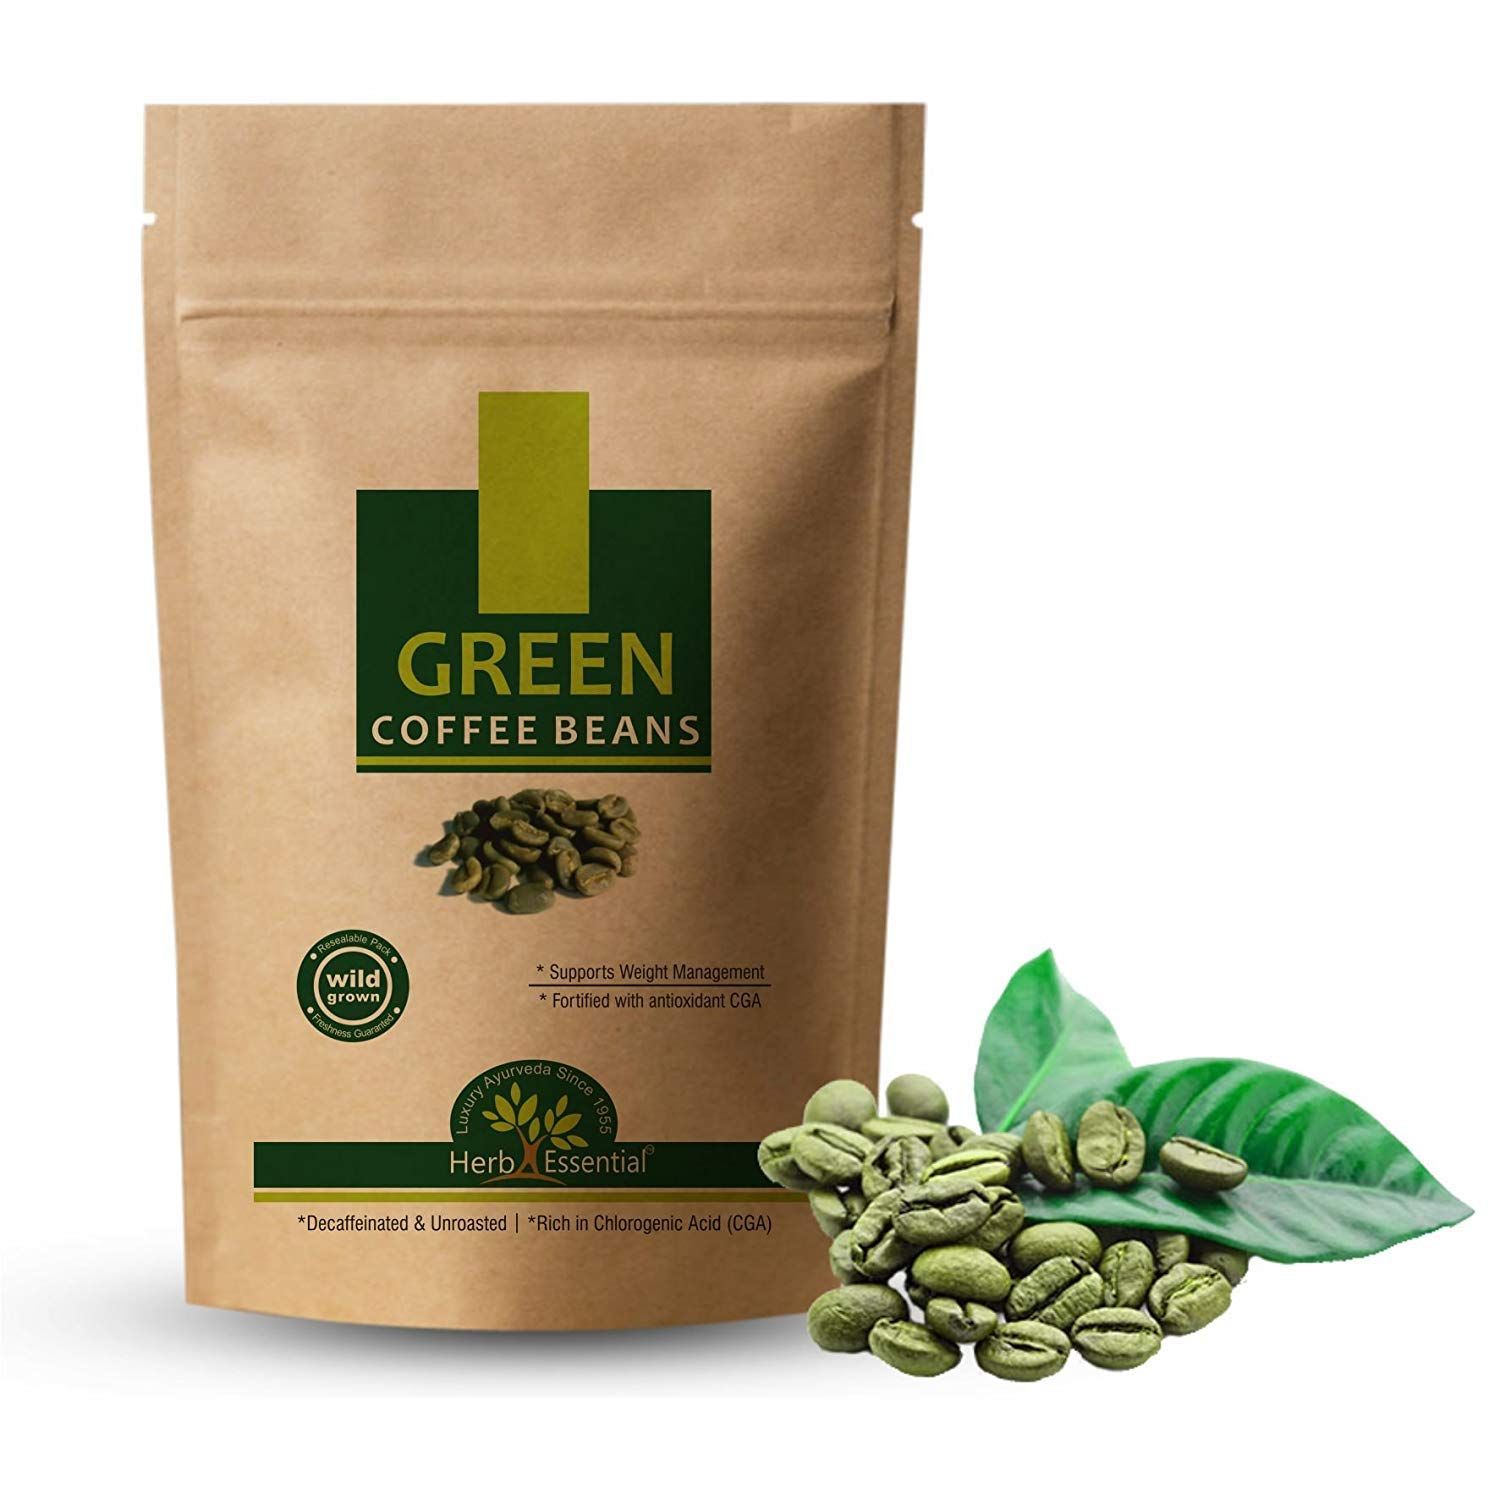 Herb Essential Unroasted and Decaffeinated Arabica Wild Grown Green Coffee for Weight Loss - 100 g